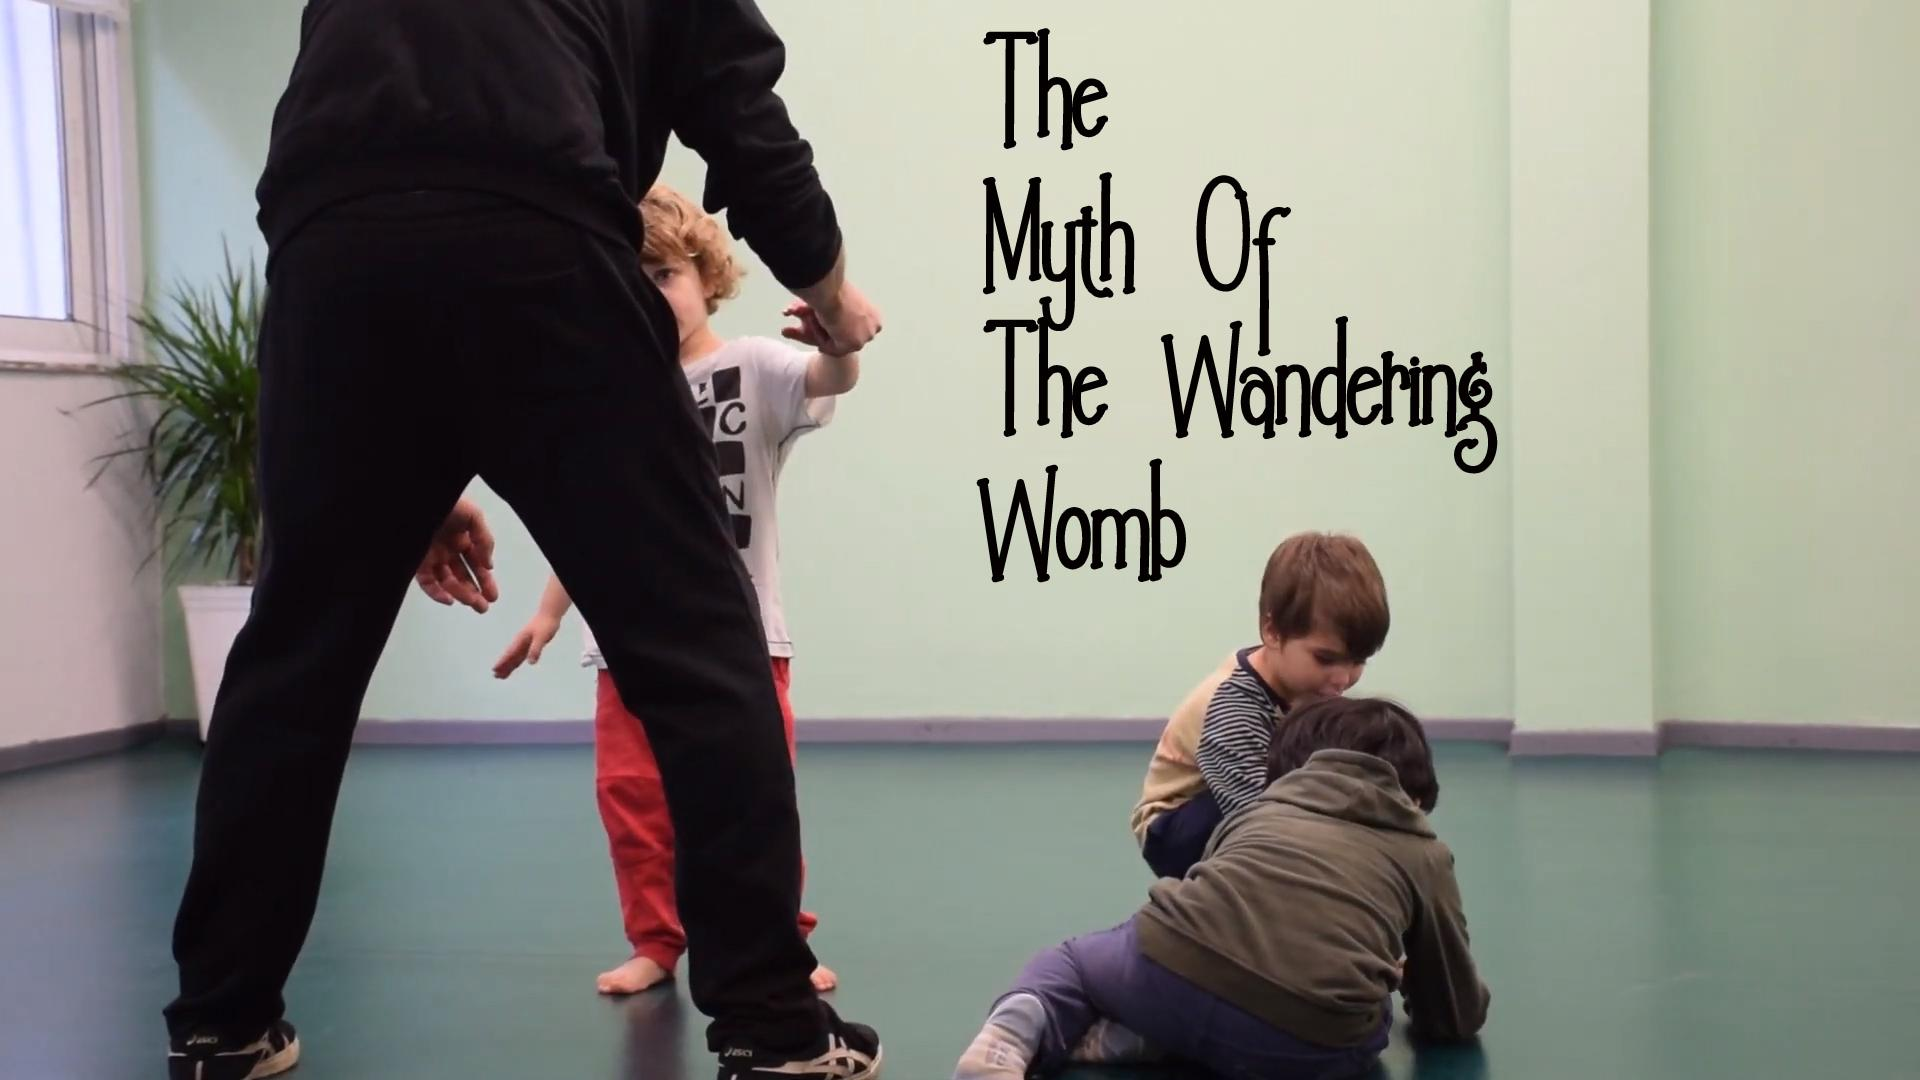 The Myth of the Wandering Womb